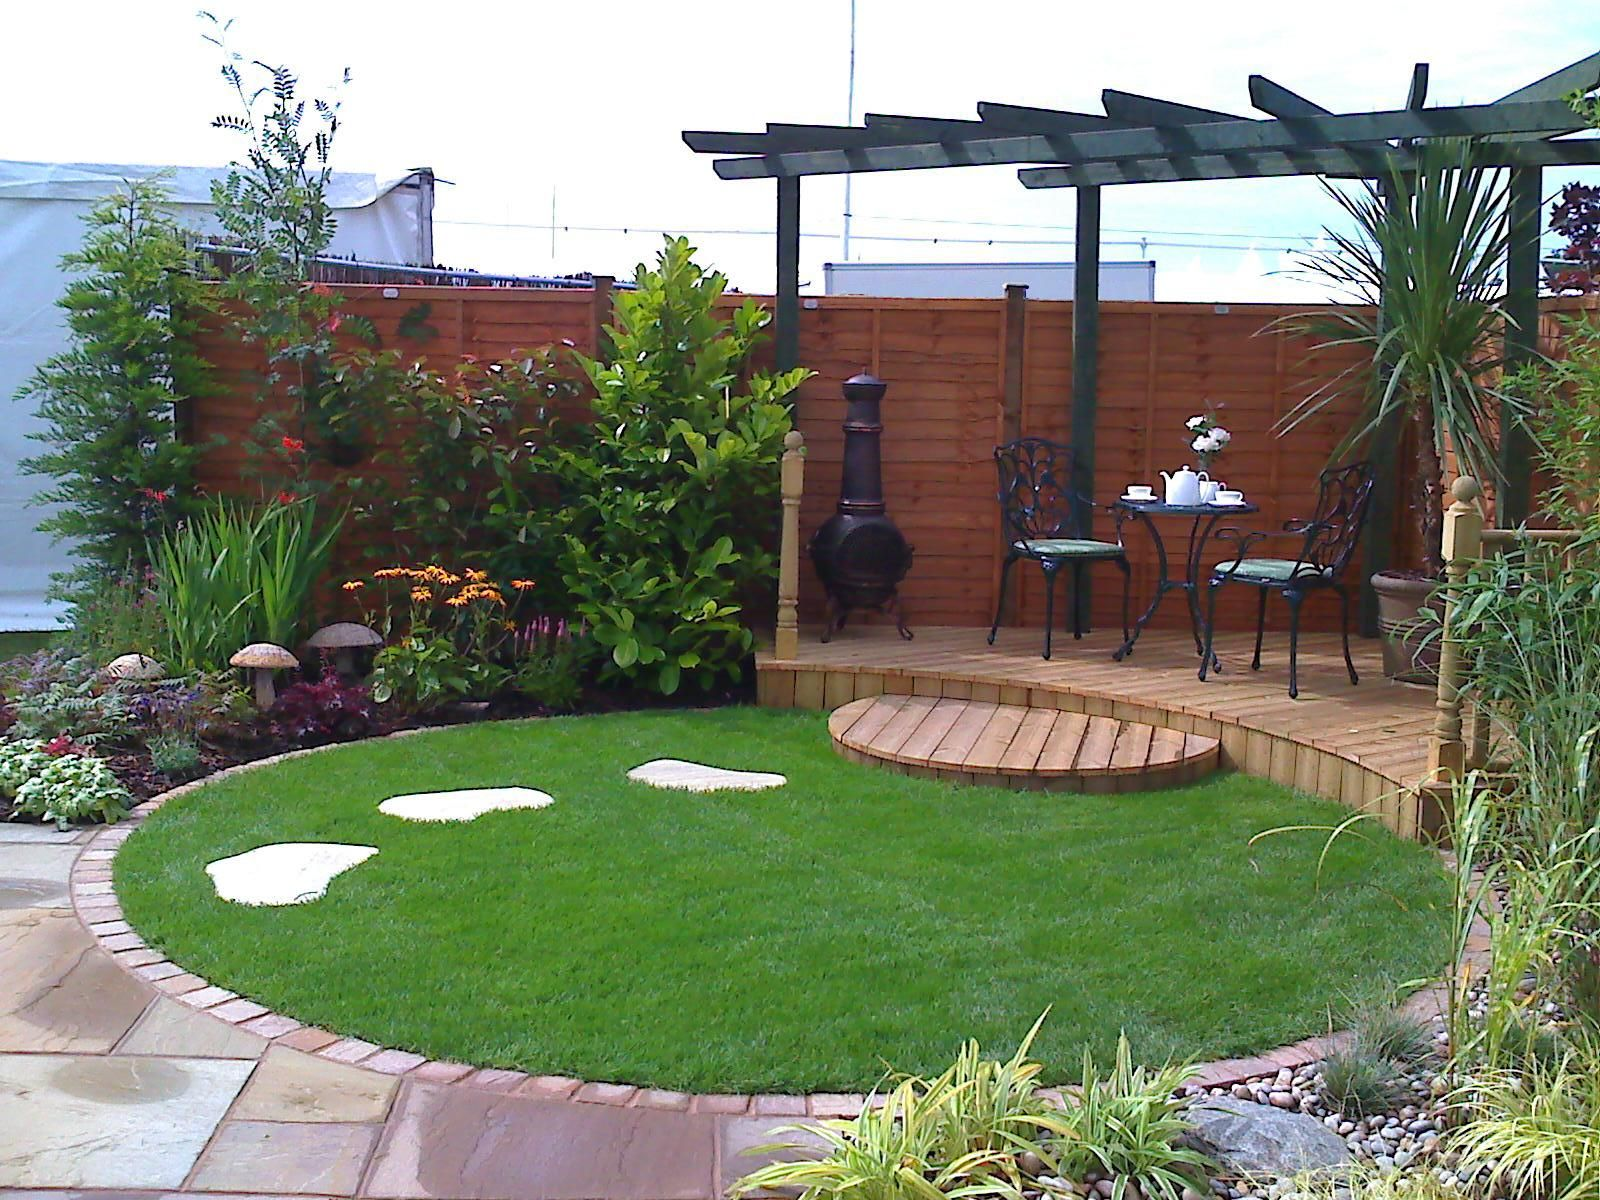 ideas for circular small gardens - Google Search | Back ... on Decking Designs For Small Gardens id=51853